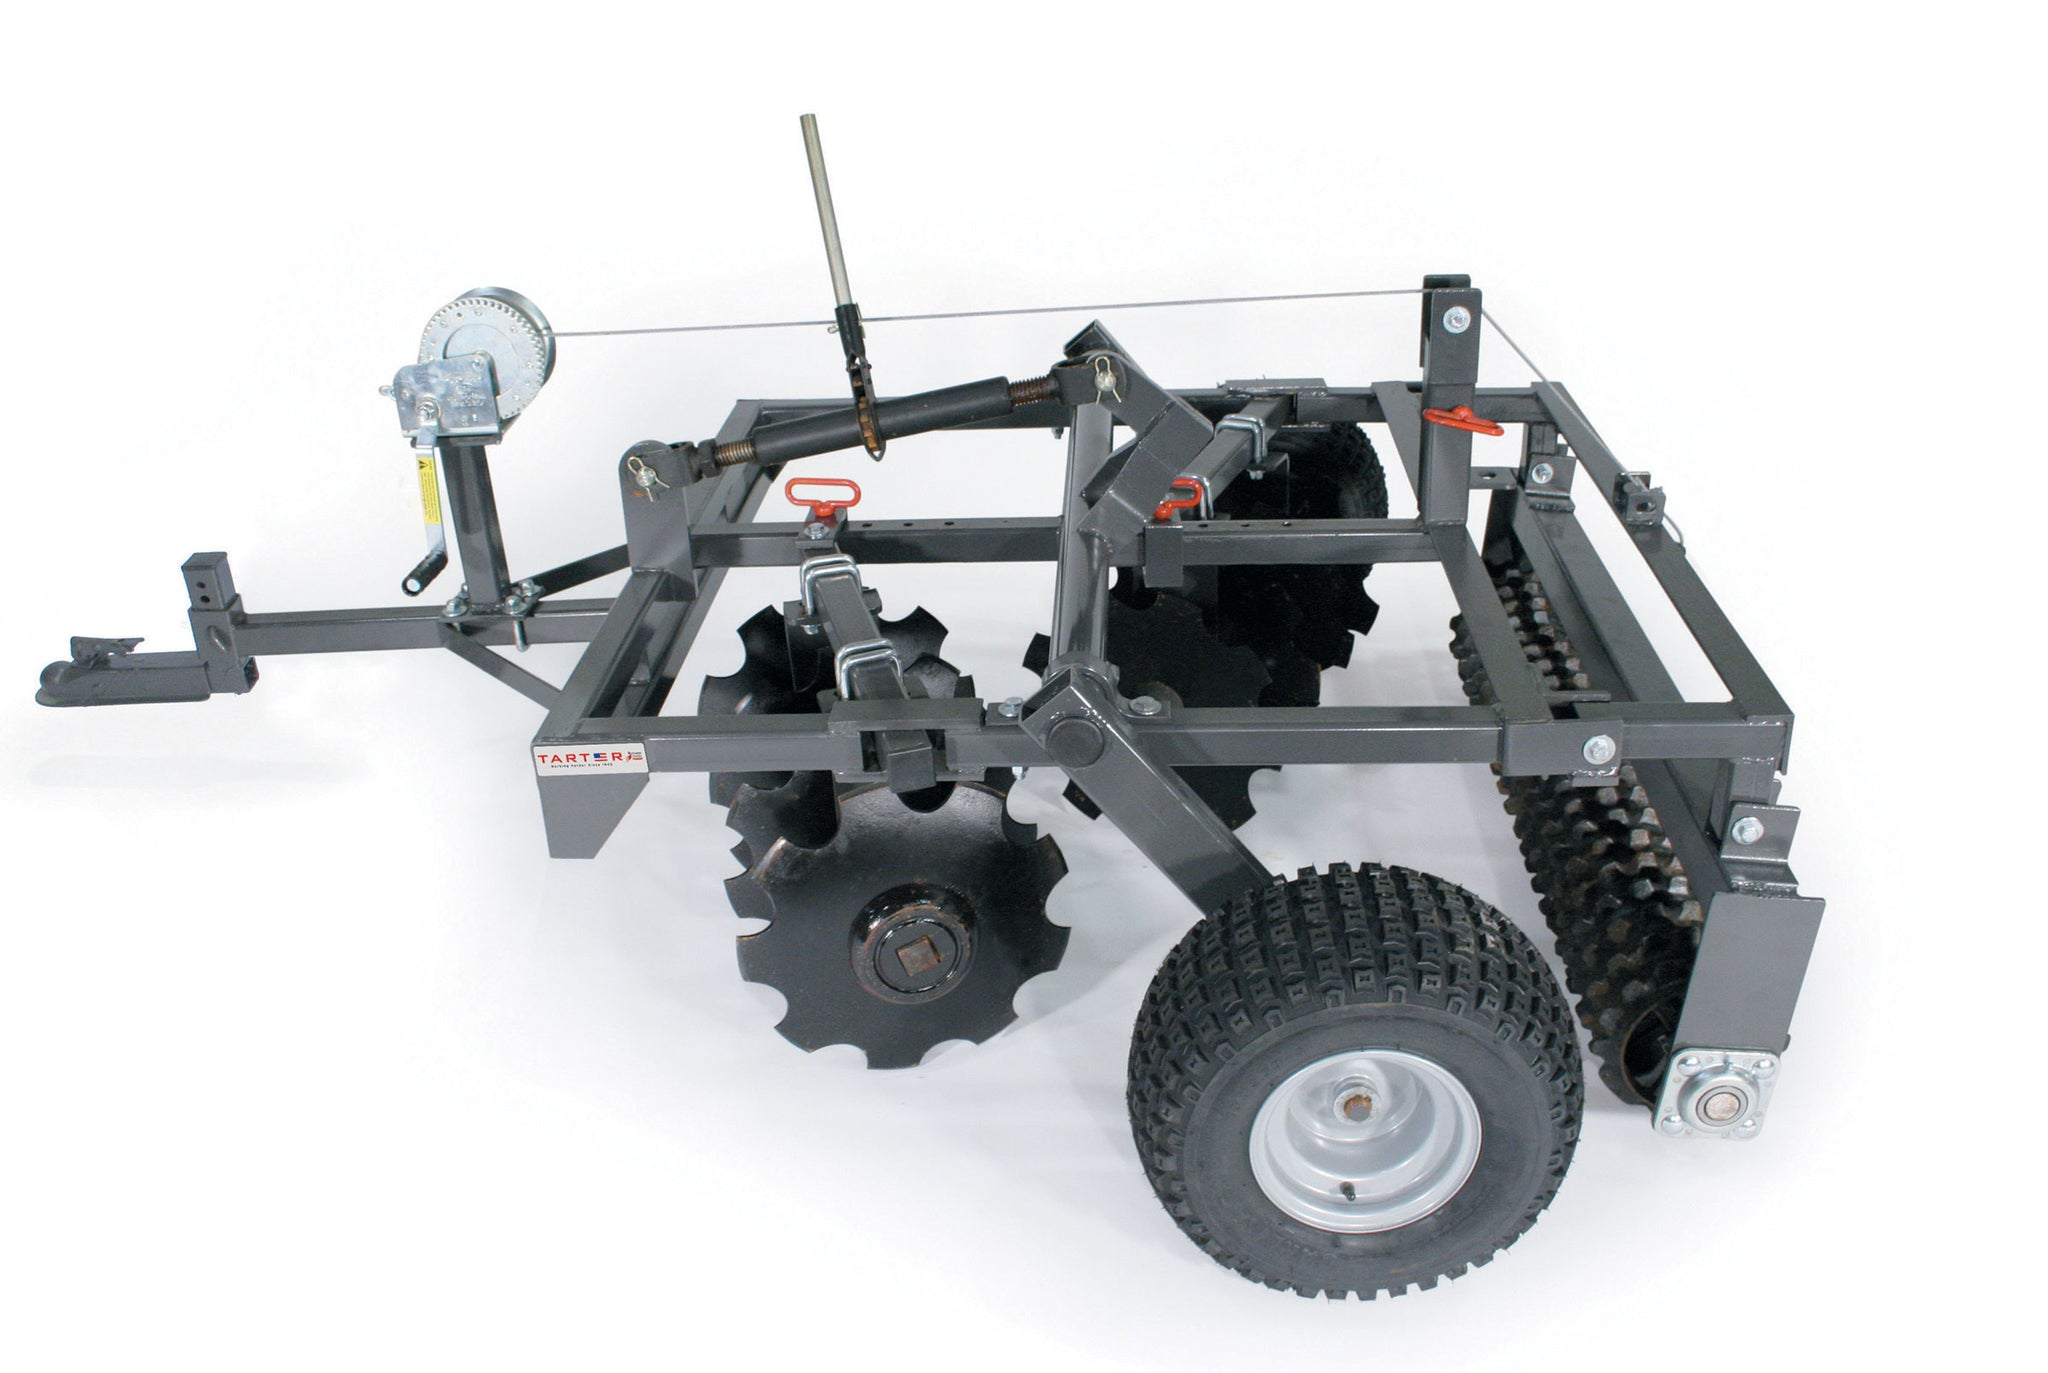 ATV DISC/CULTI-PACKER COMBO